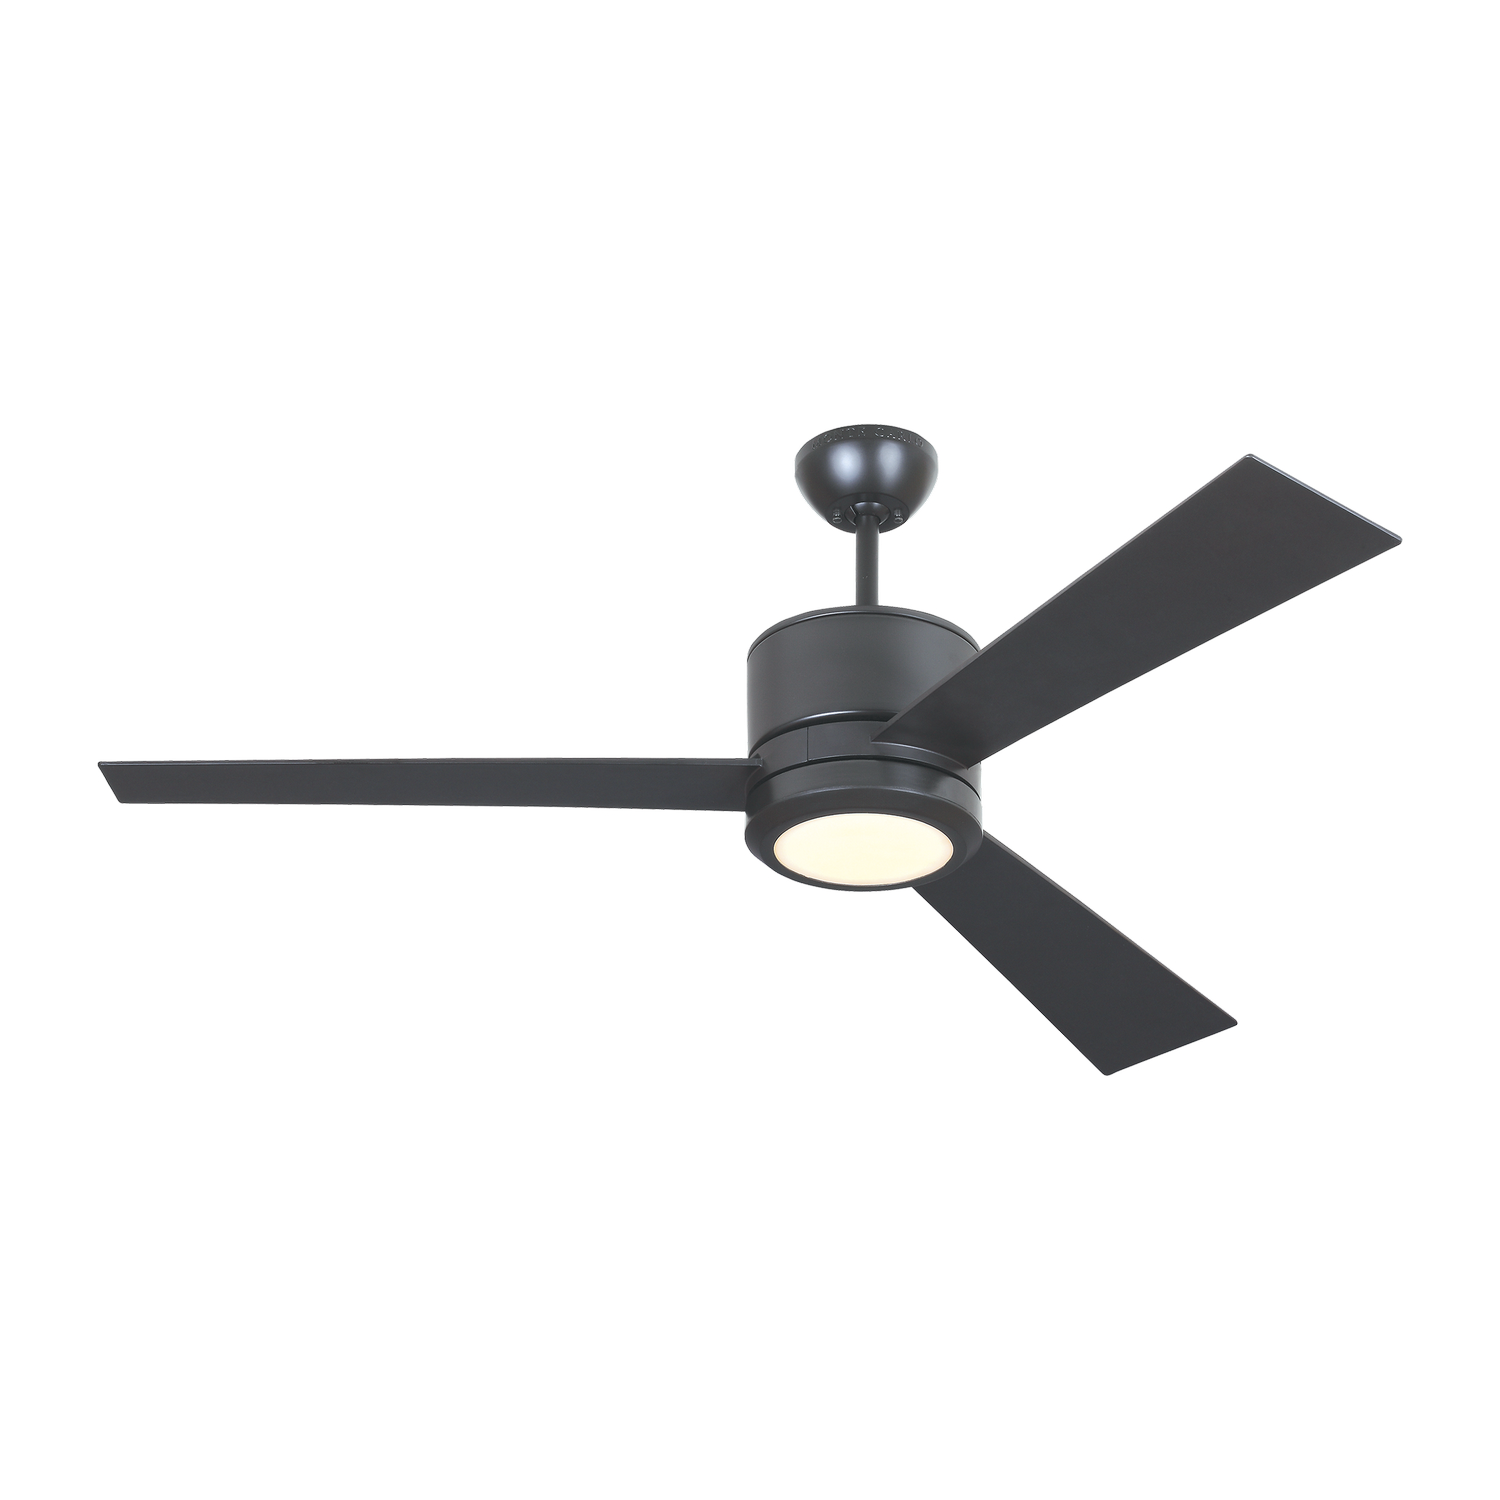 52 inchCeiling Fan from the Vision collection by Monte Carlo 3VNR52OZD V1